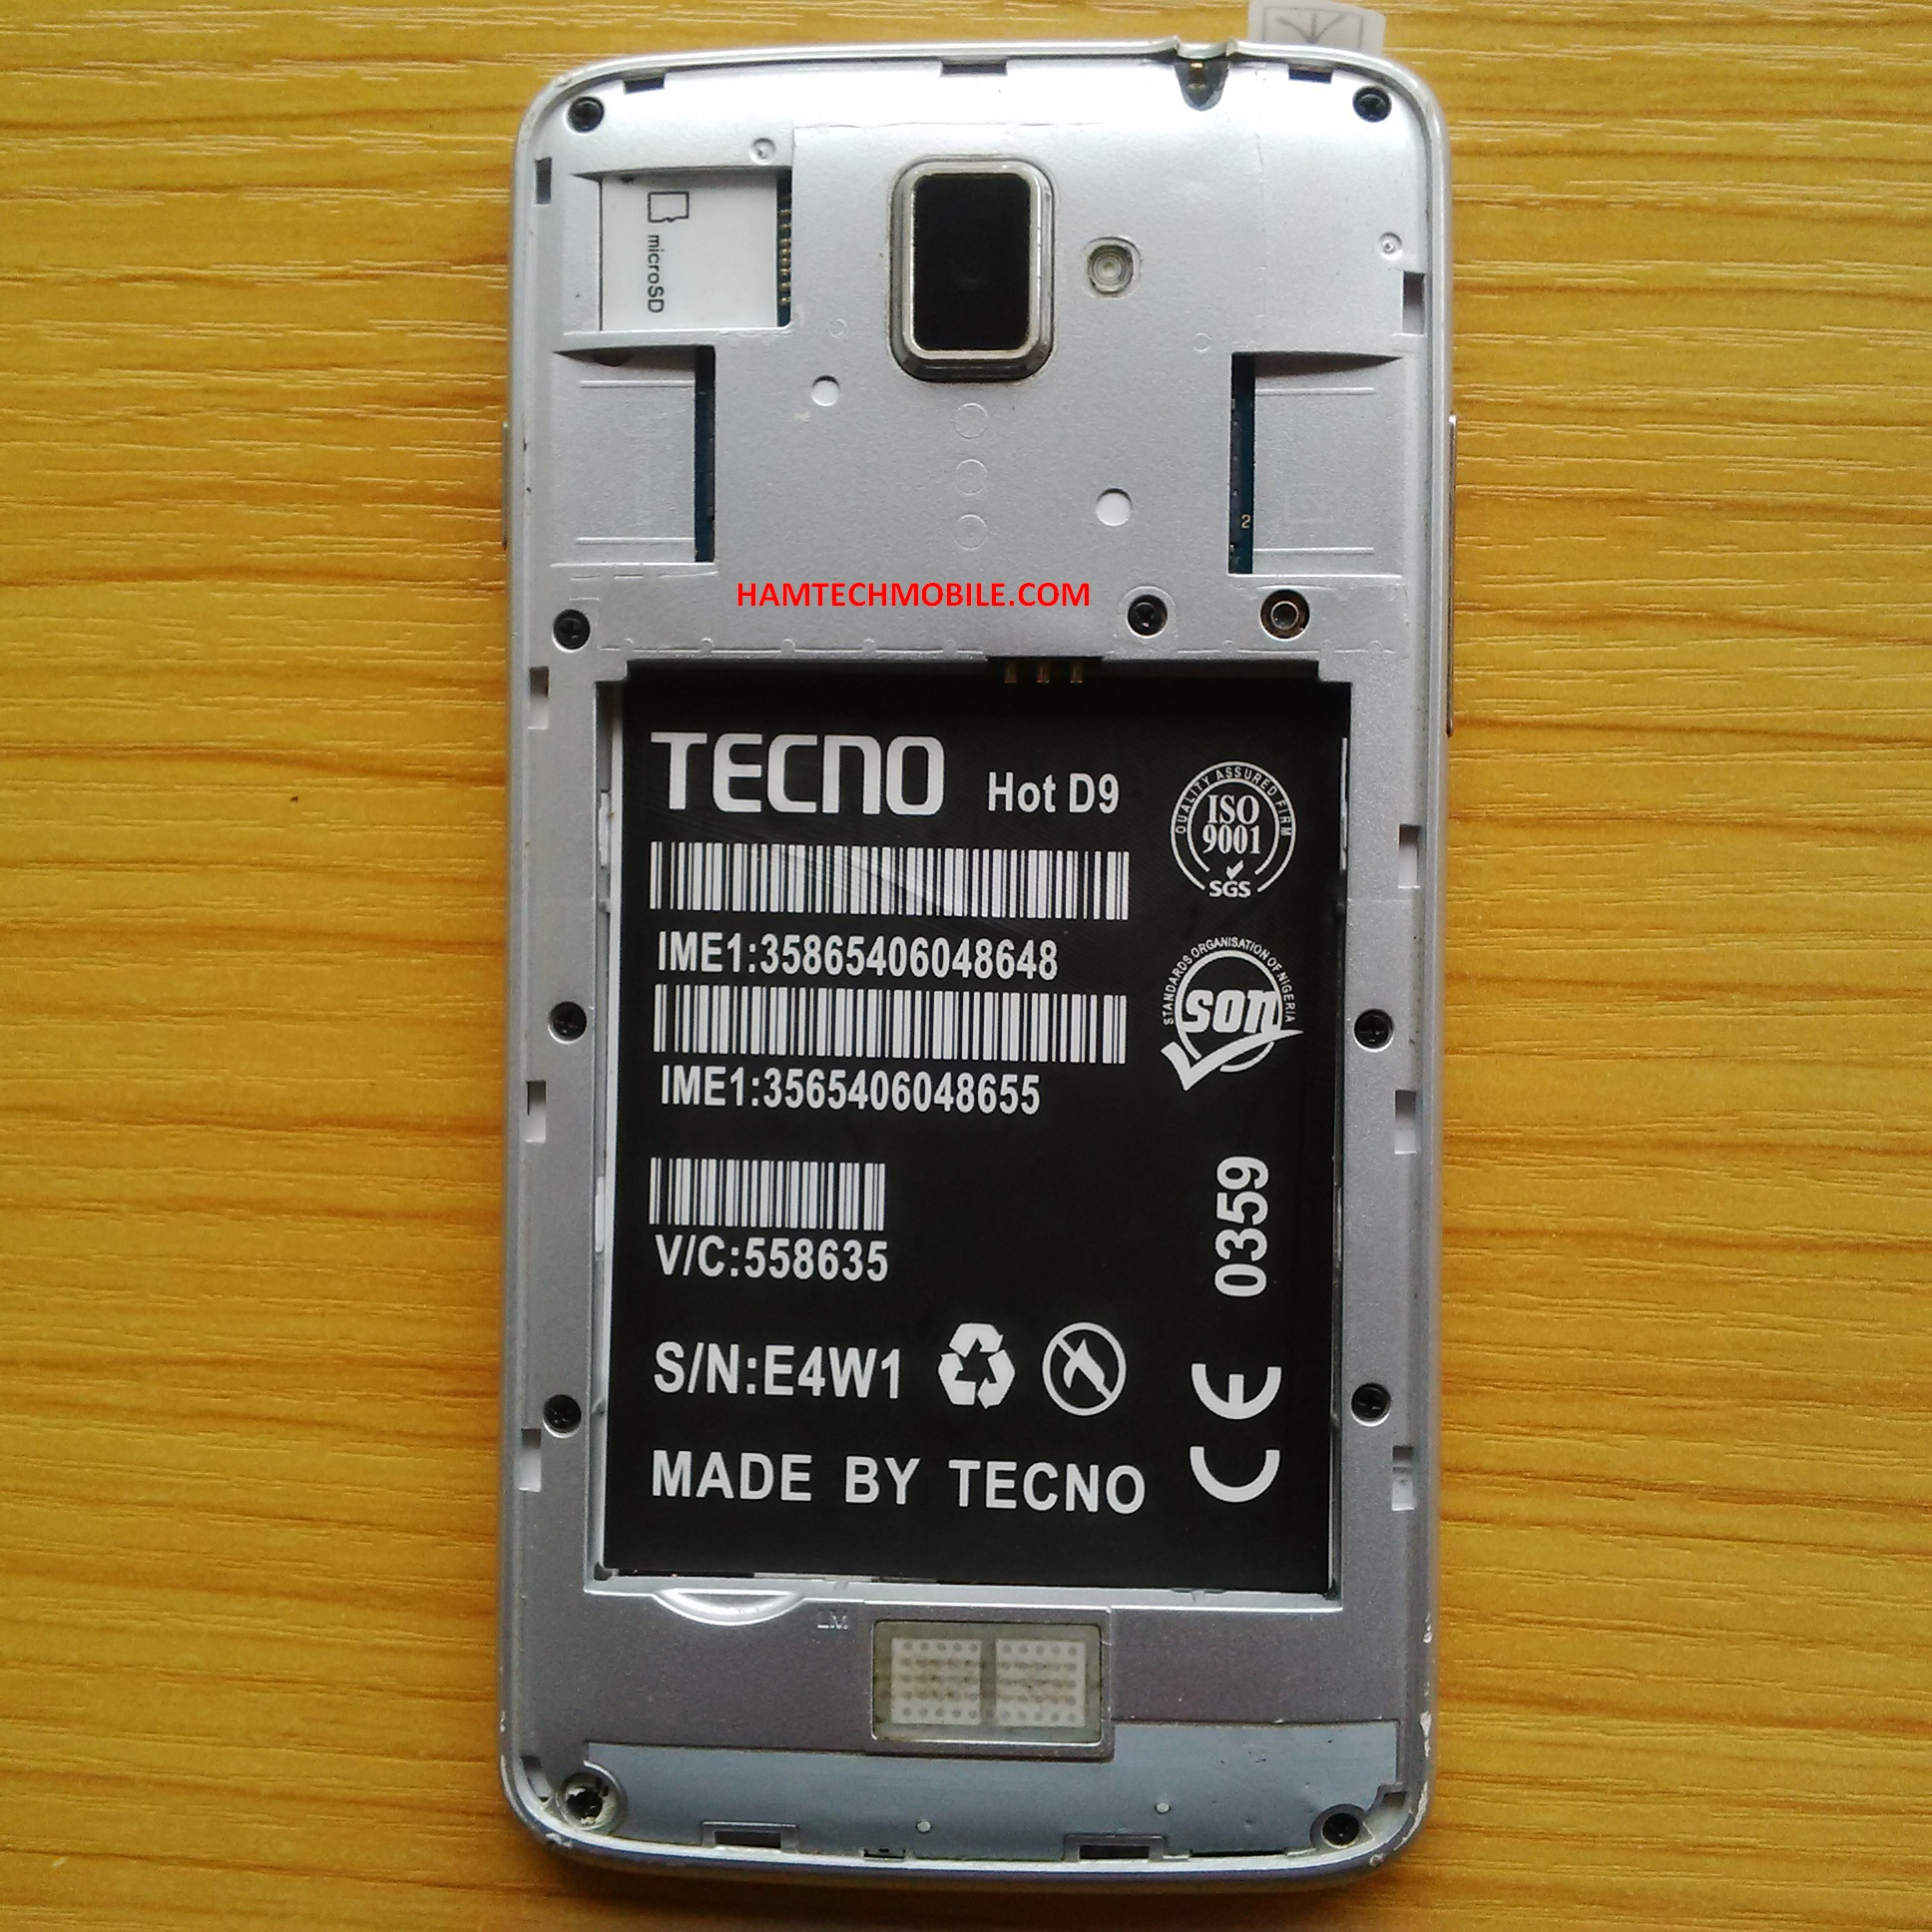 Tecno Hot D9 { Marvell } Stock Rom Firmware Free Flash File